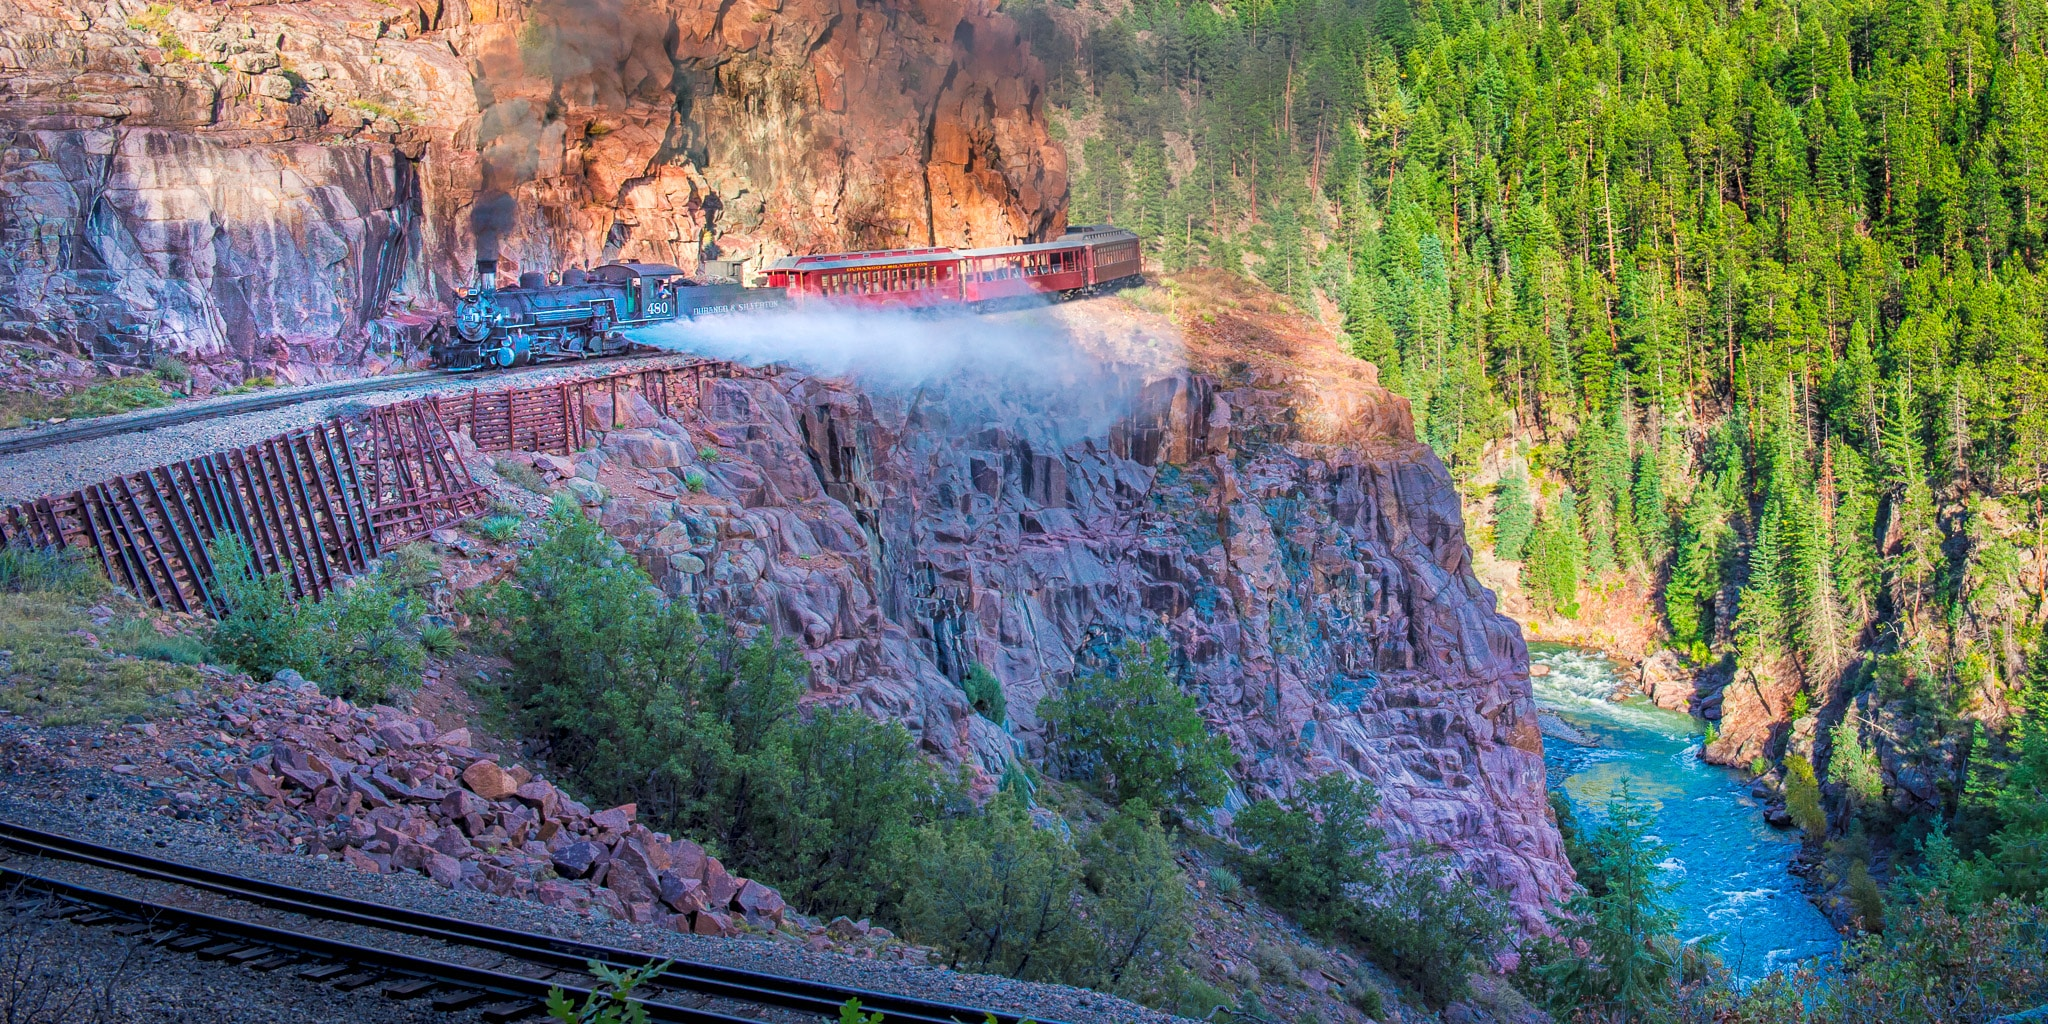 View of the autumn Durqango & Silverton Photography train as it makes its way along the Animas River between Durango and Silverton, Colorado.